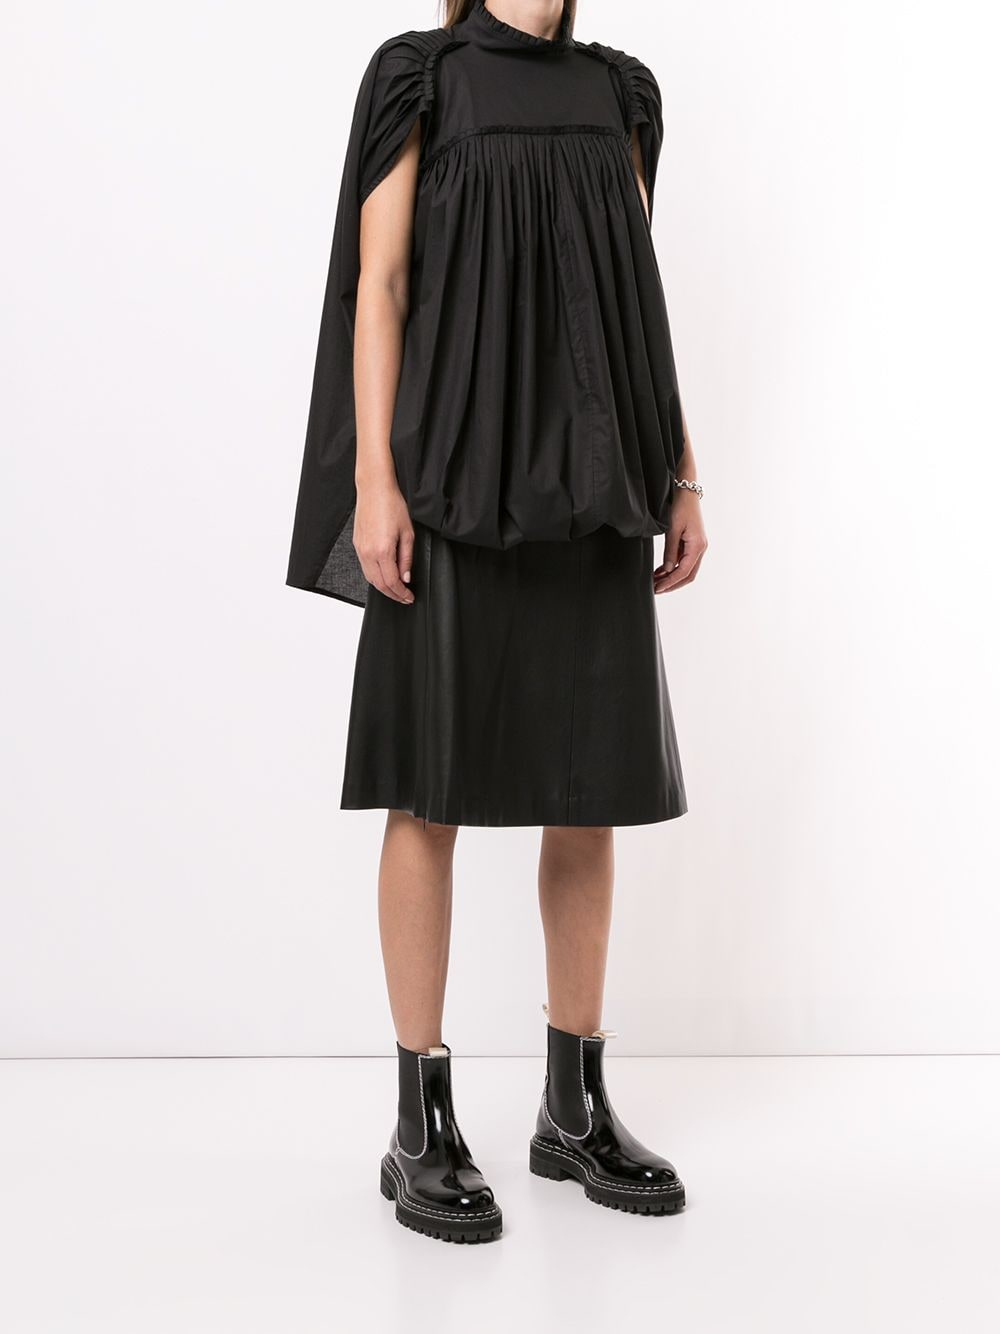 ANN DEMEULEMEESTER WOMEN PLEATED RIBBON TOP